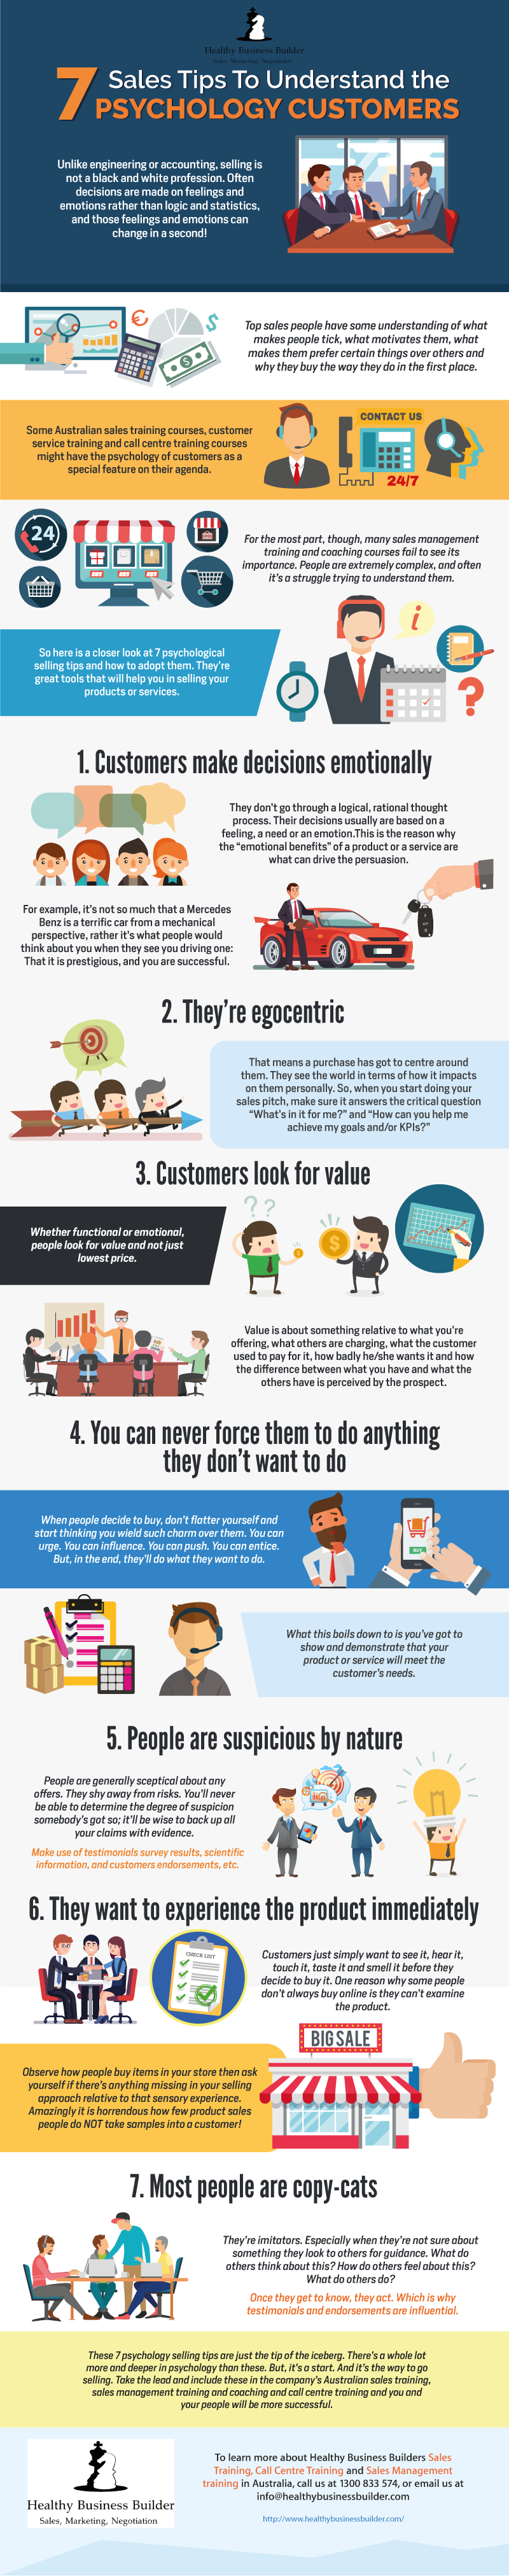 7 Sales Tips To Understand the Psychology of Customers!